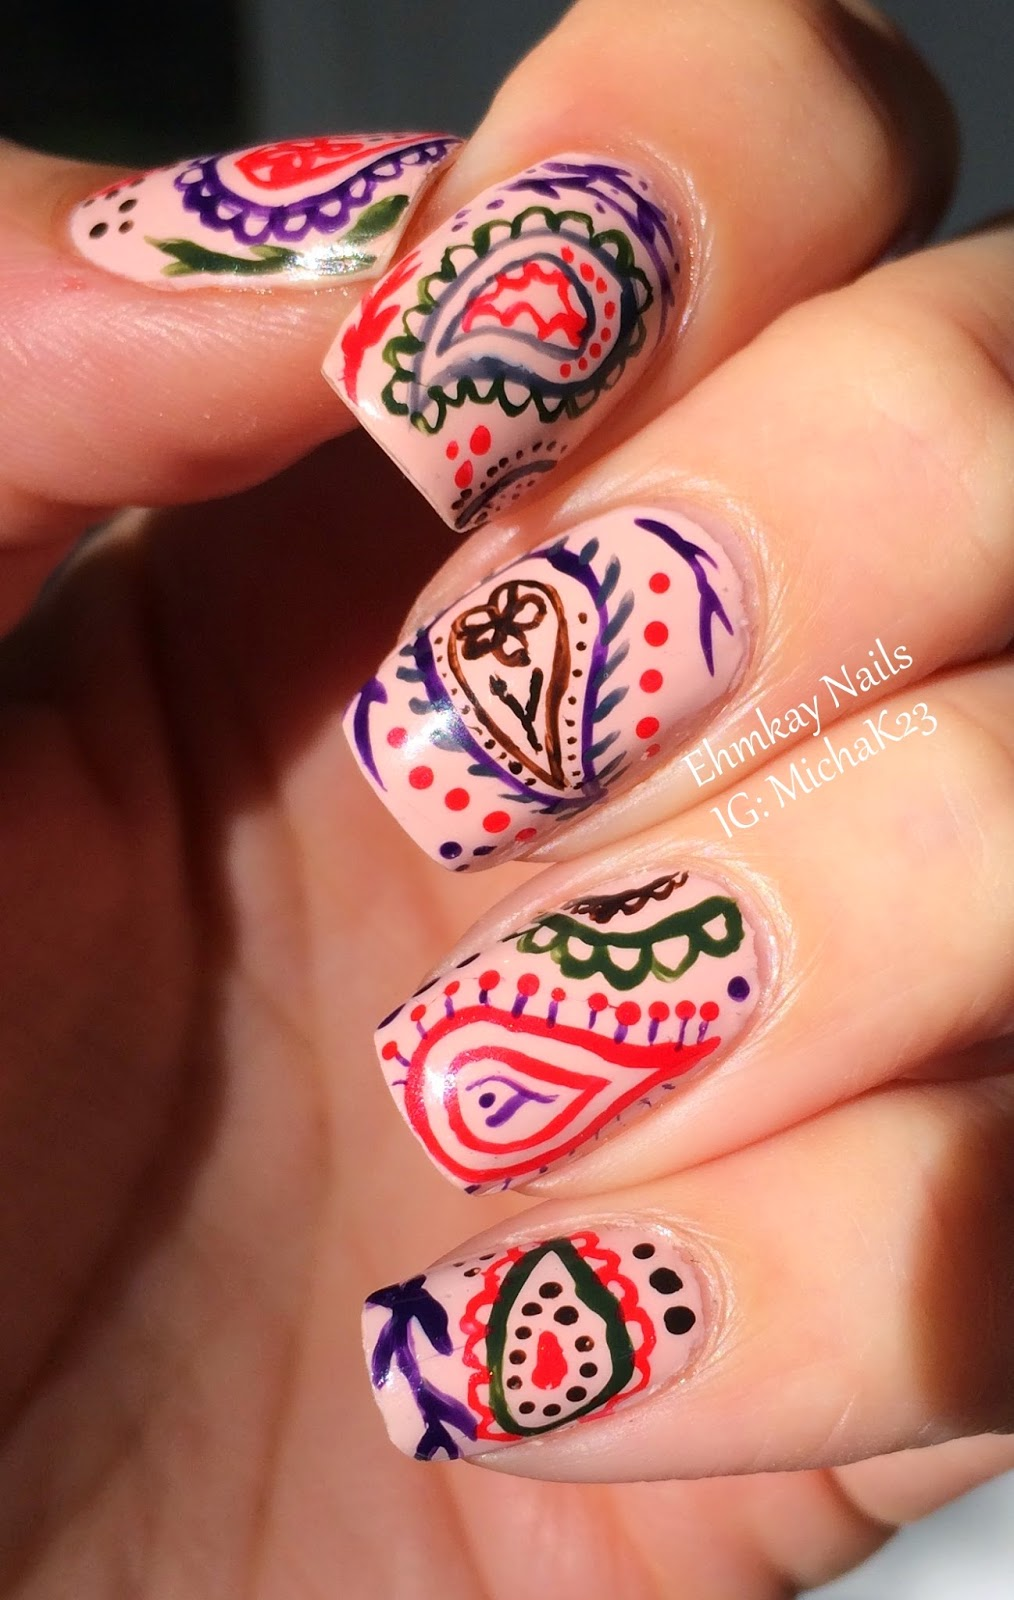 ehmkay nails: Hand-painted Paisley Nail Art with Jessica Autumn in ...